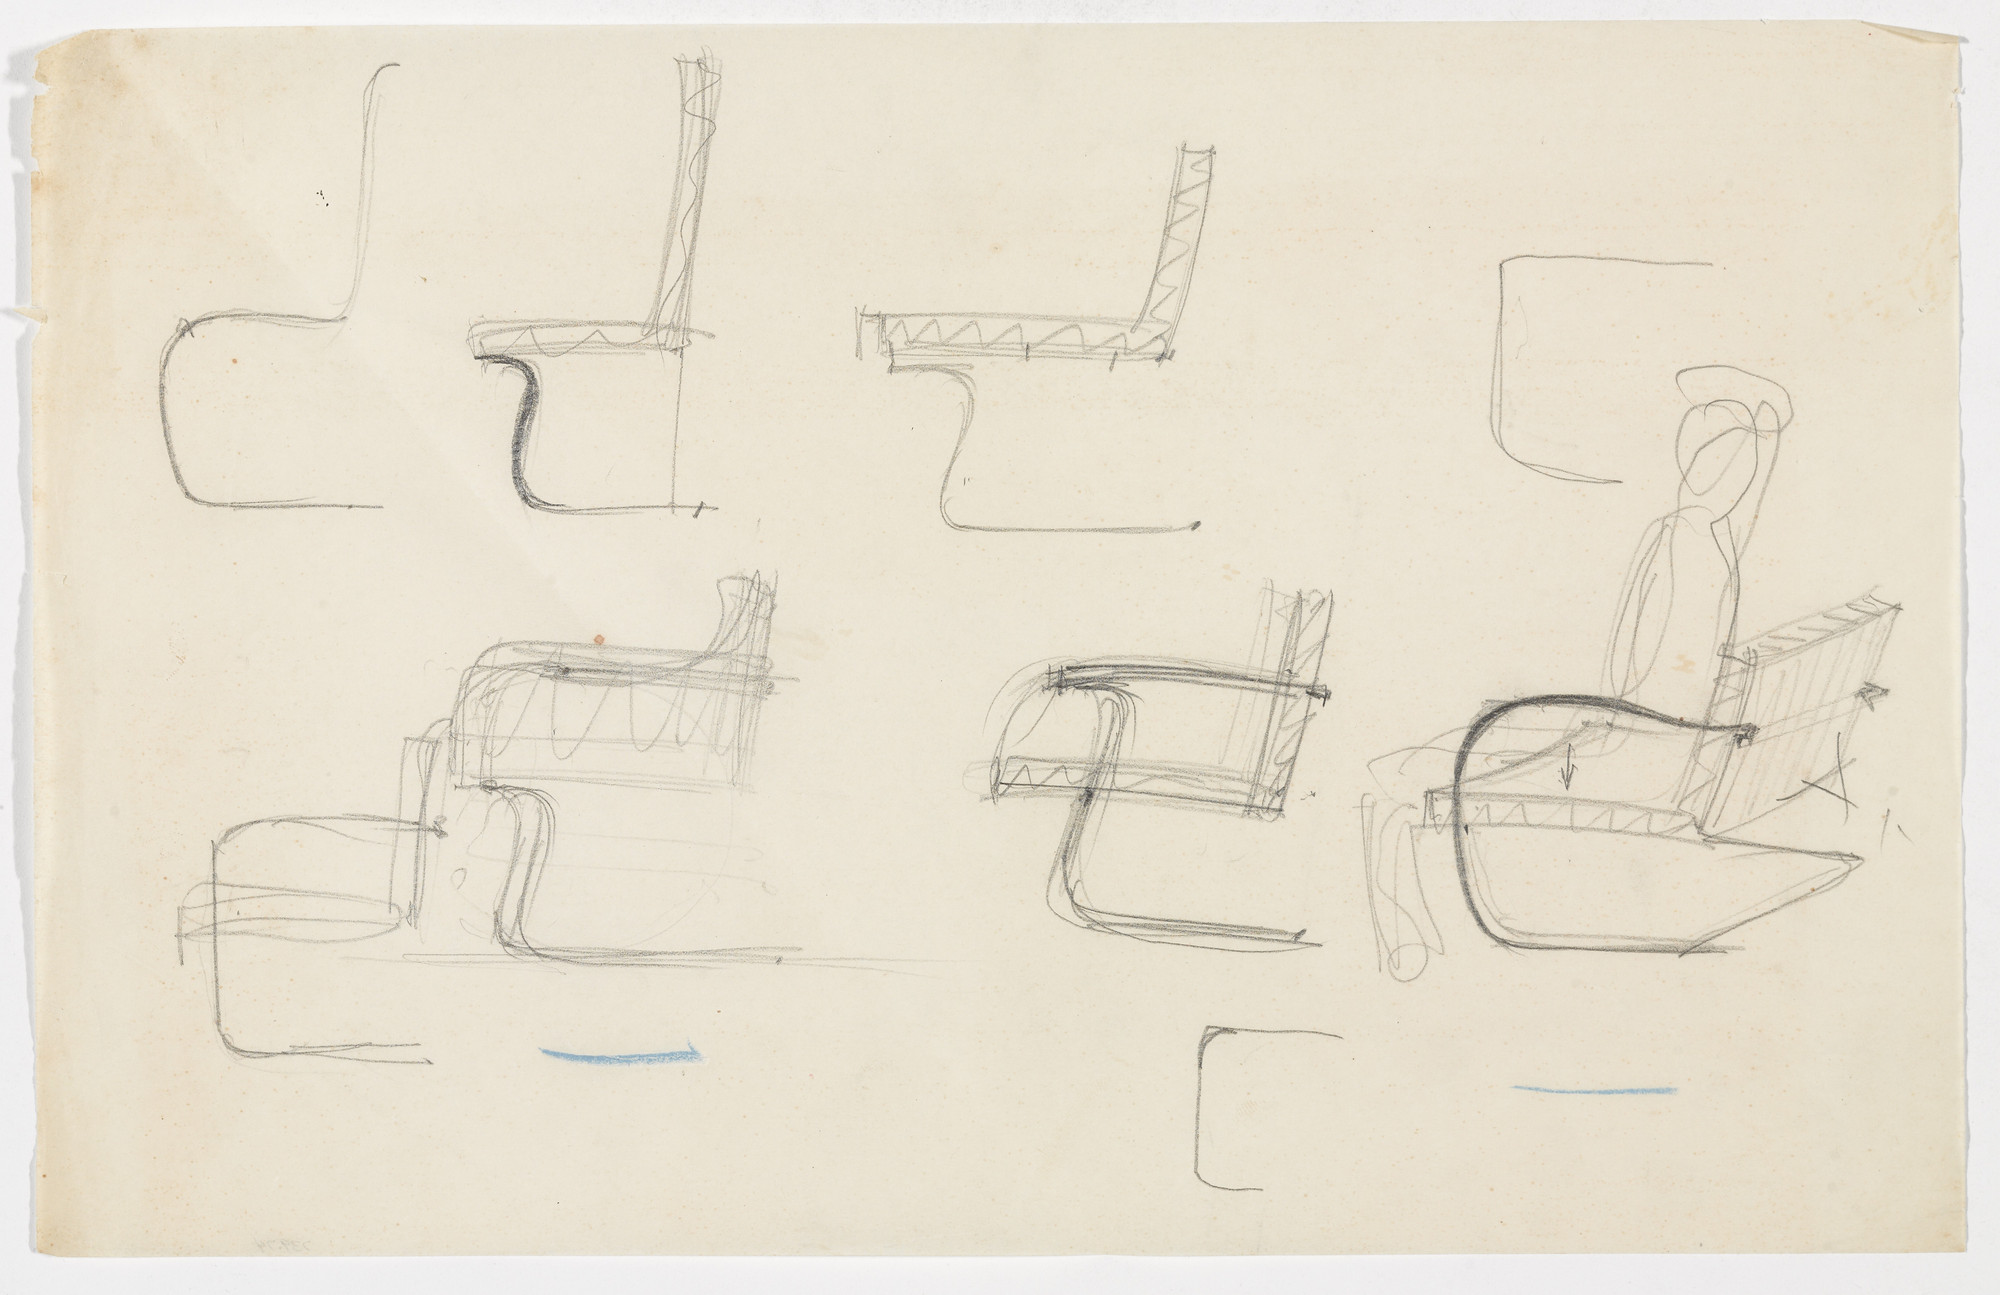 Ludwig Mies van der Rohe. Tugendhat Chair. Brno Chair. Two Chairs with Arms. (Elevation sketches, perspective sketch). c.1930